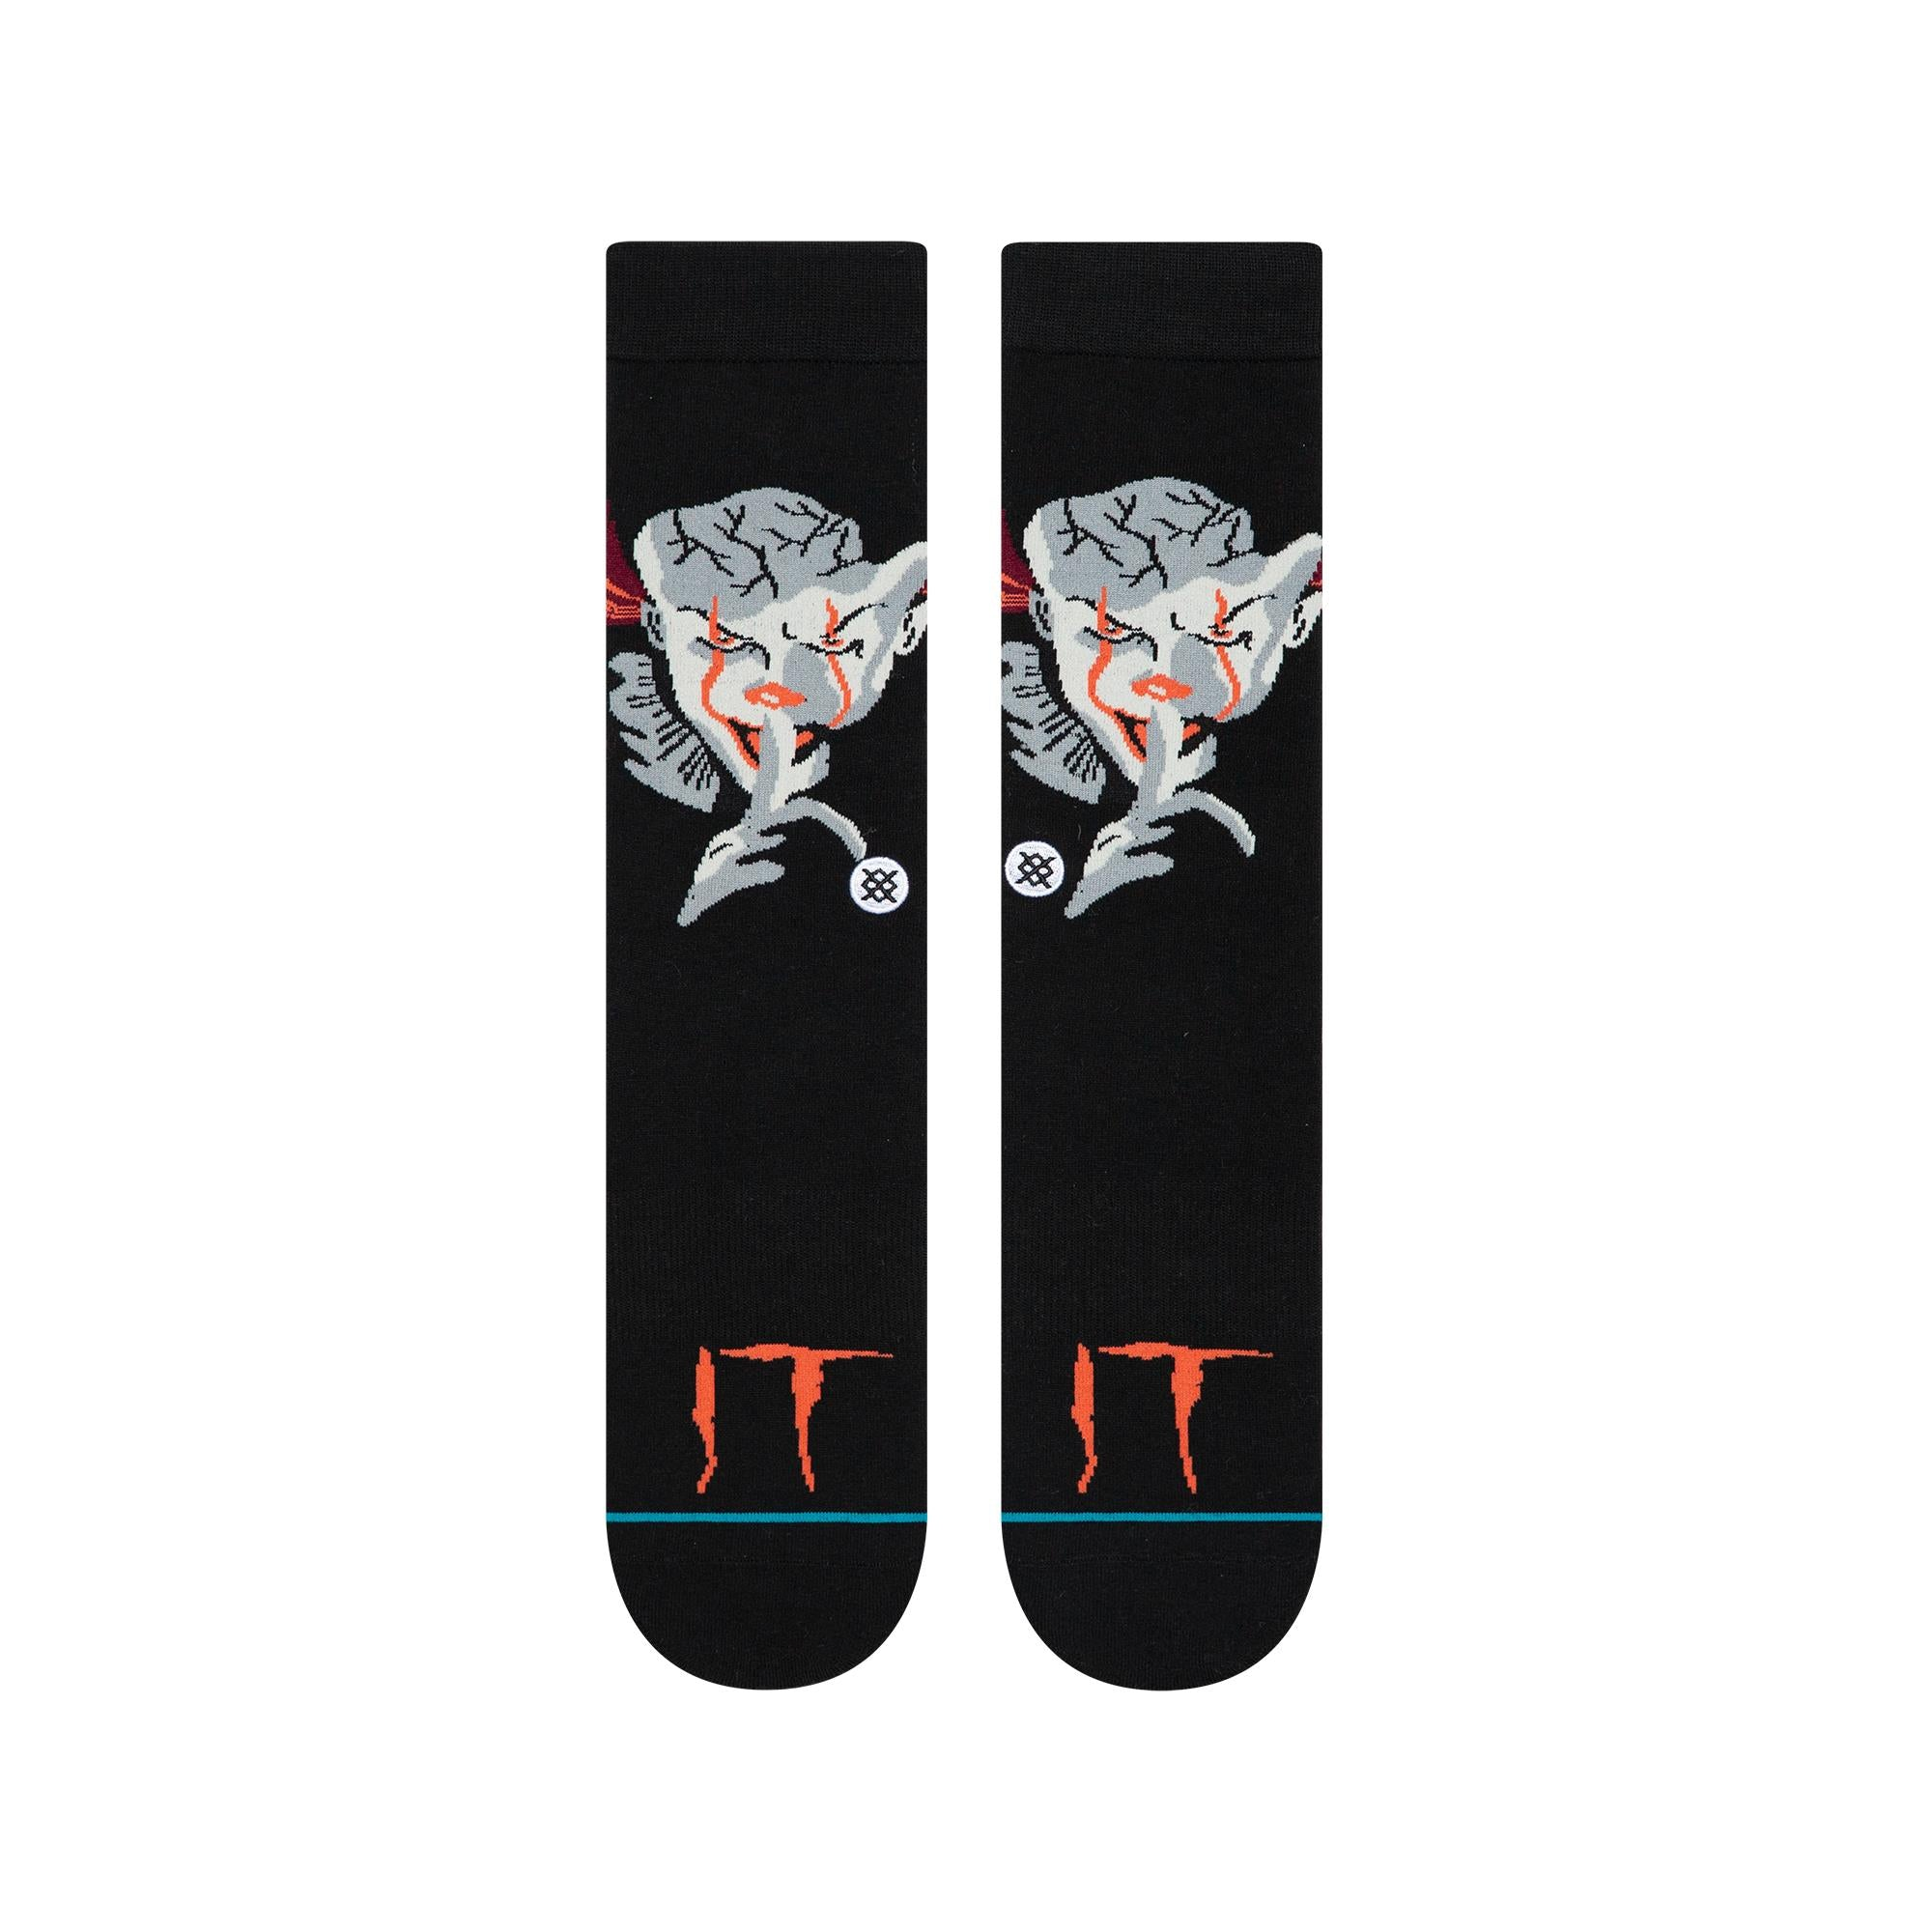 m545c19pen-blk Stance IT Pennywise Socks black front view